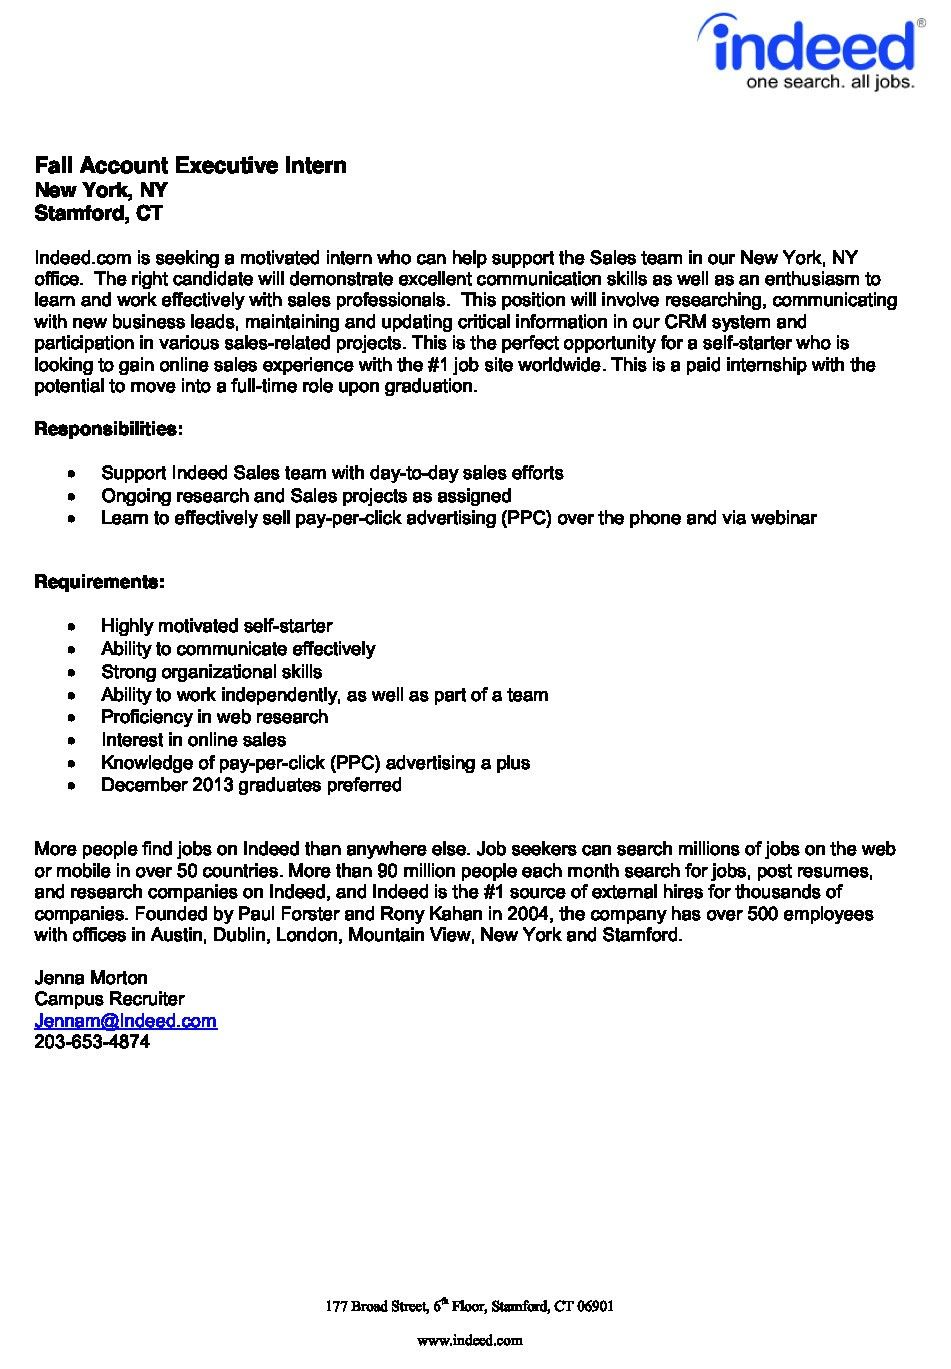 Resume Examples Indeed Resume Templates Resume Examples Resume Templates Letter Templates